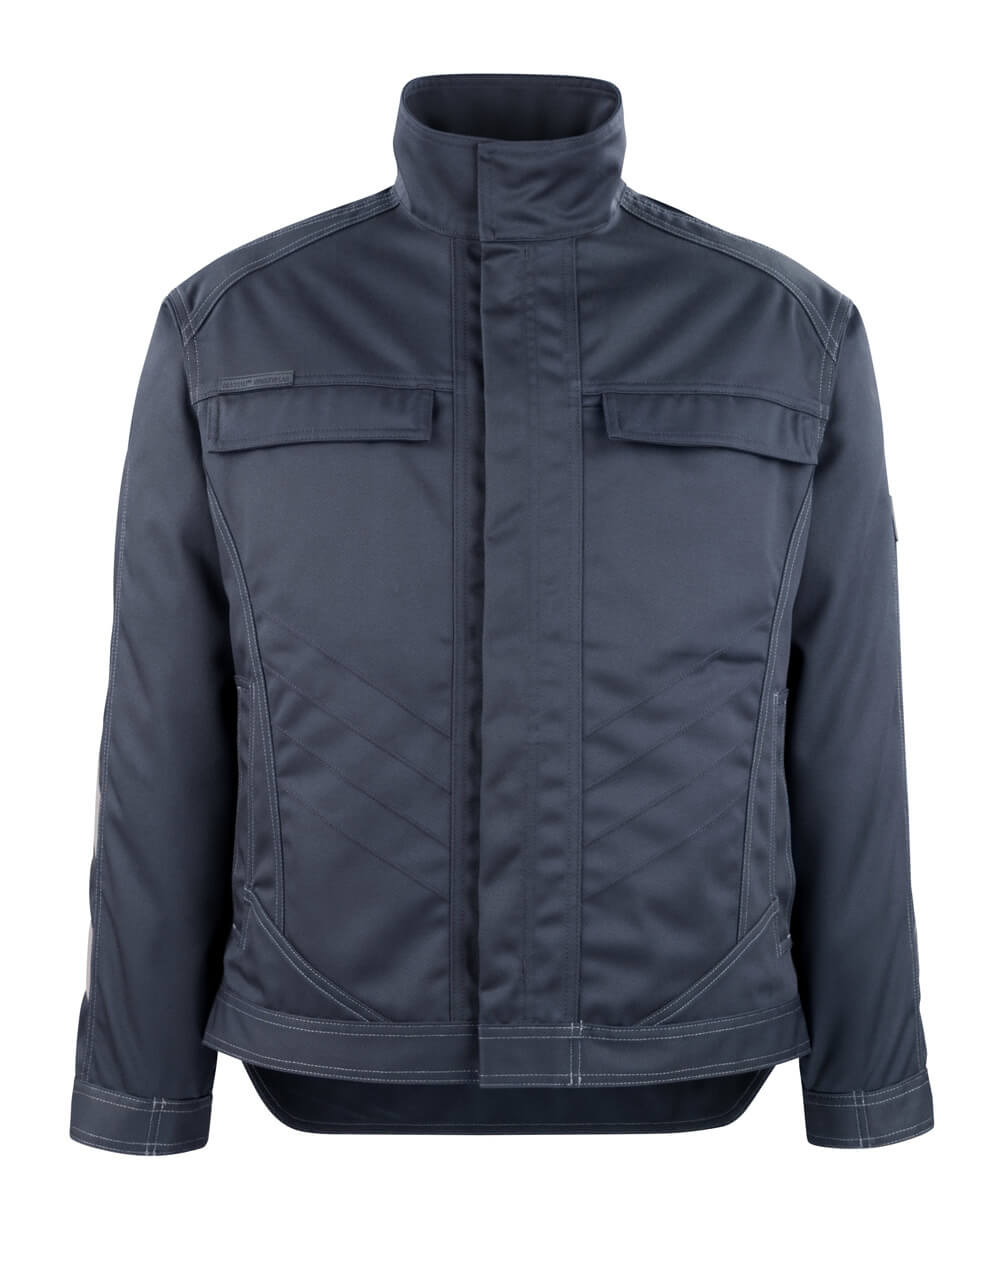 12109-203-010 Jacket - dark navy